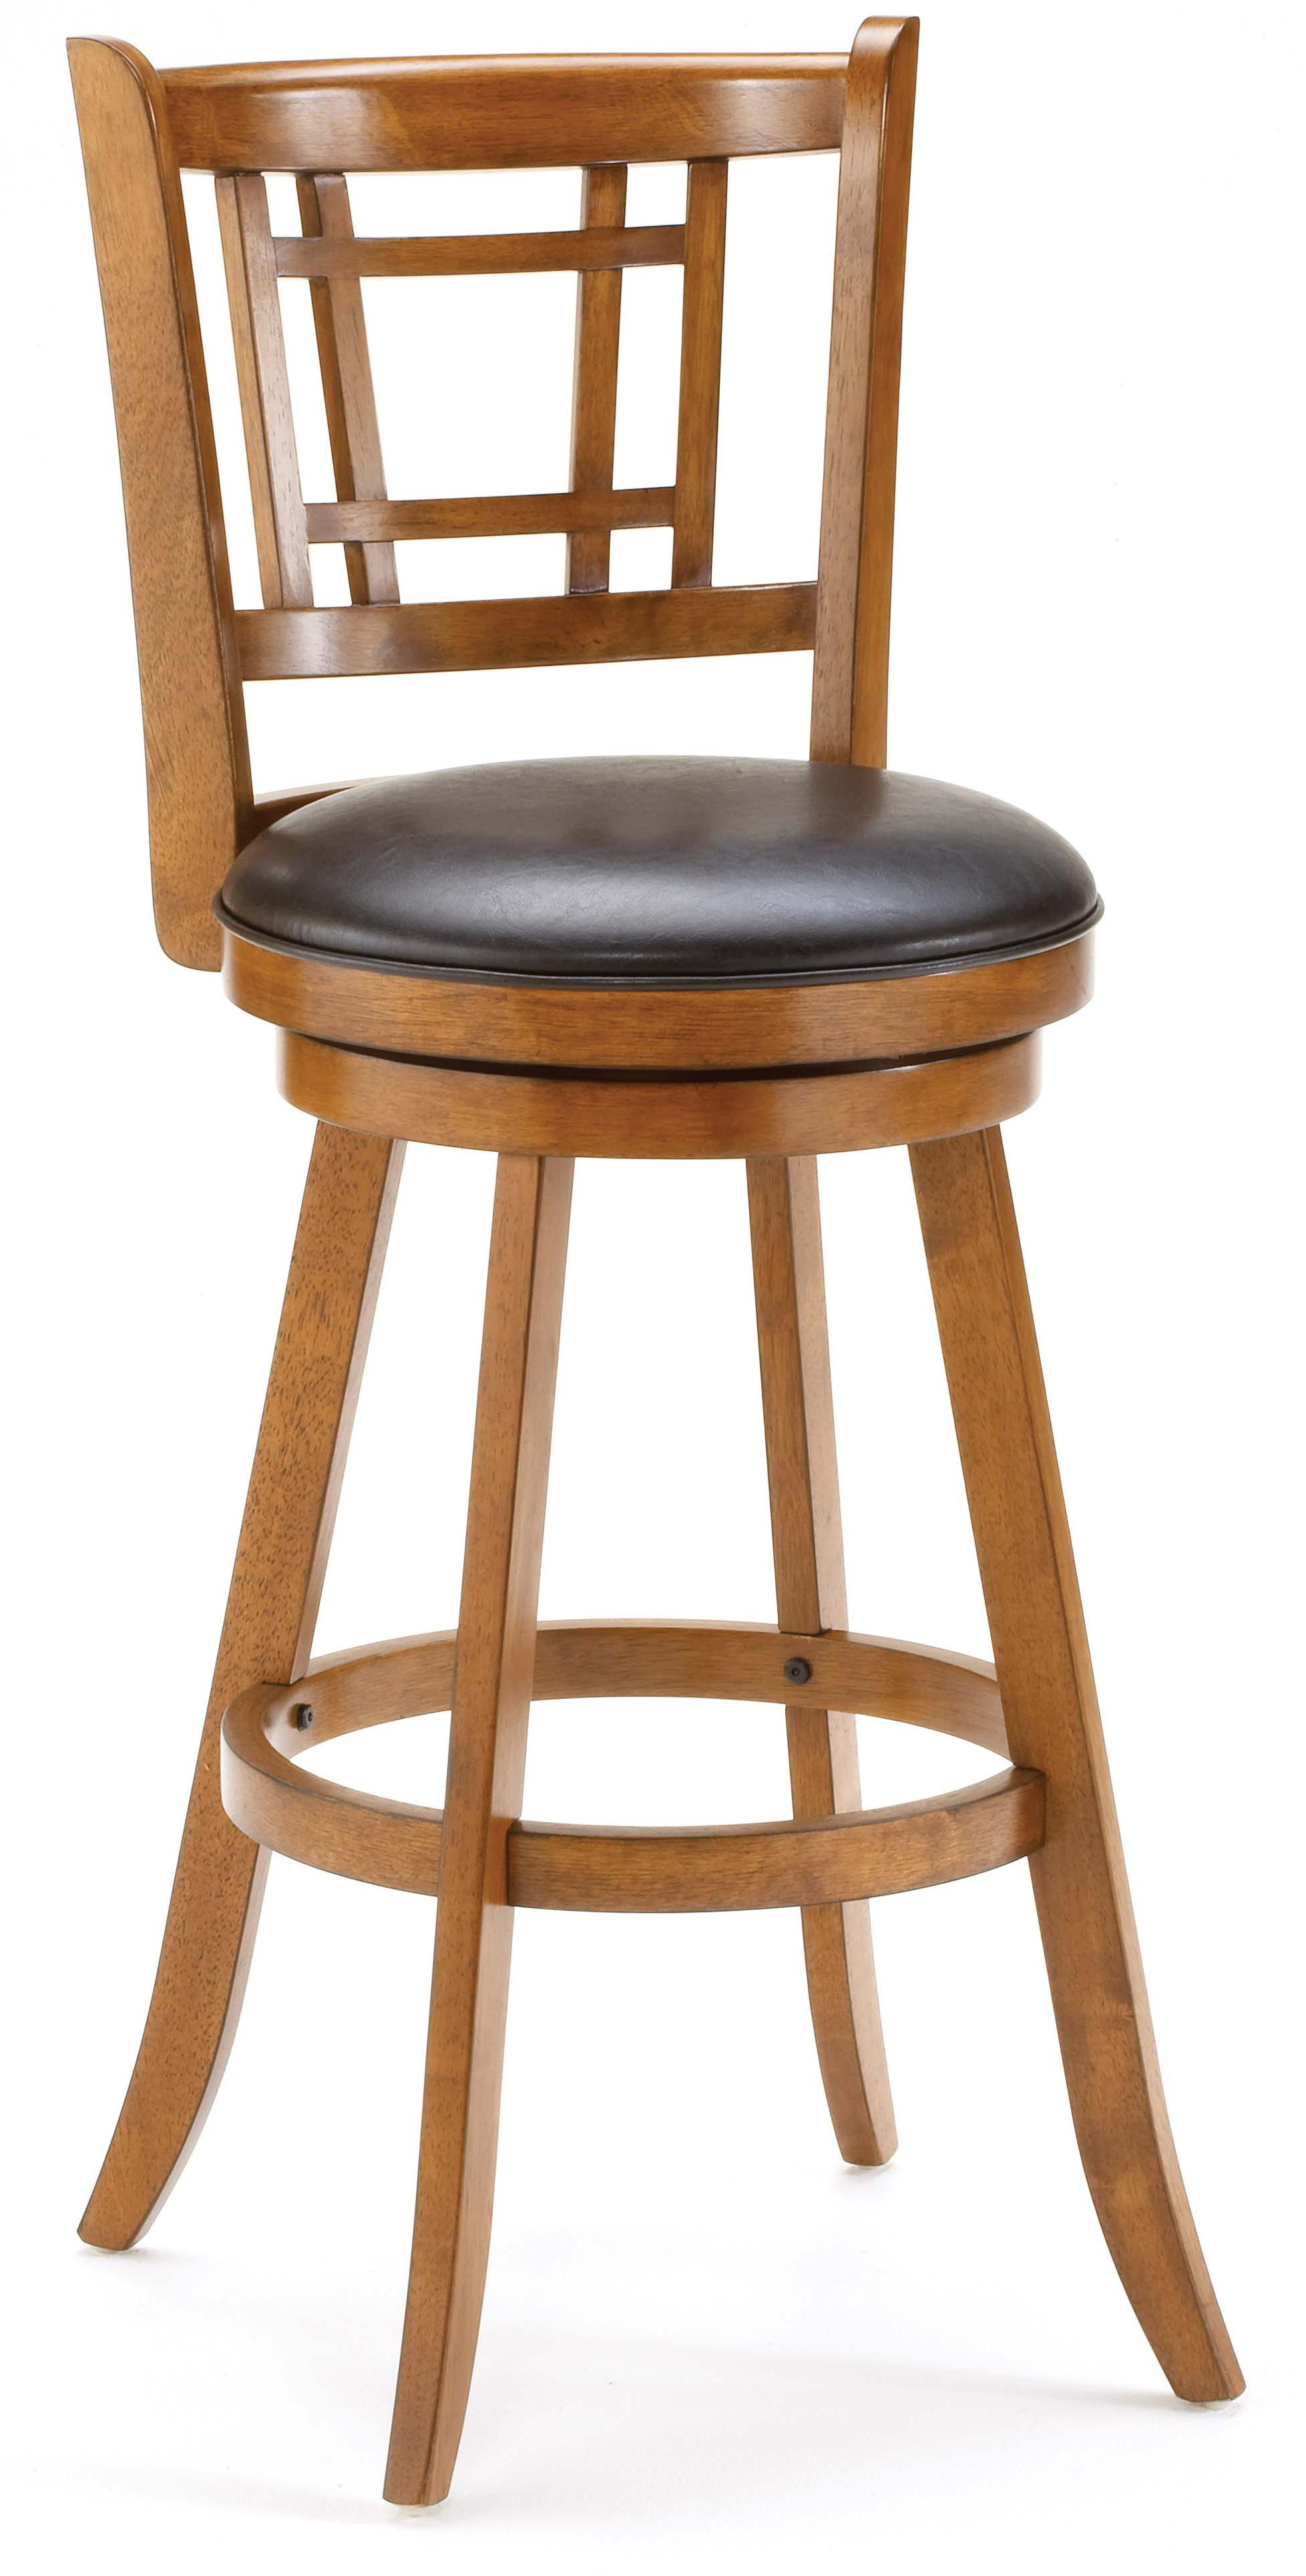 Wood Stools Fairfox Swivel Counter Stool by Hillsdale at Novello Home Furnishings